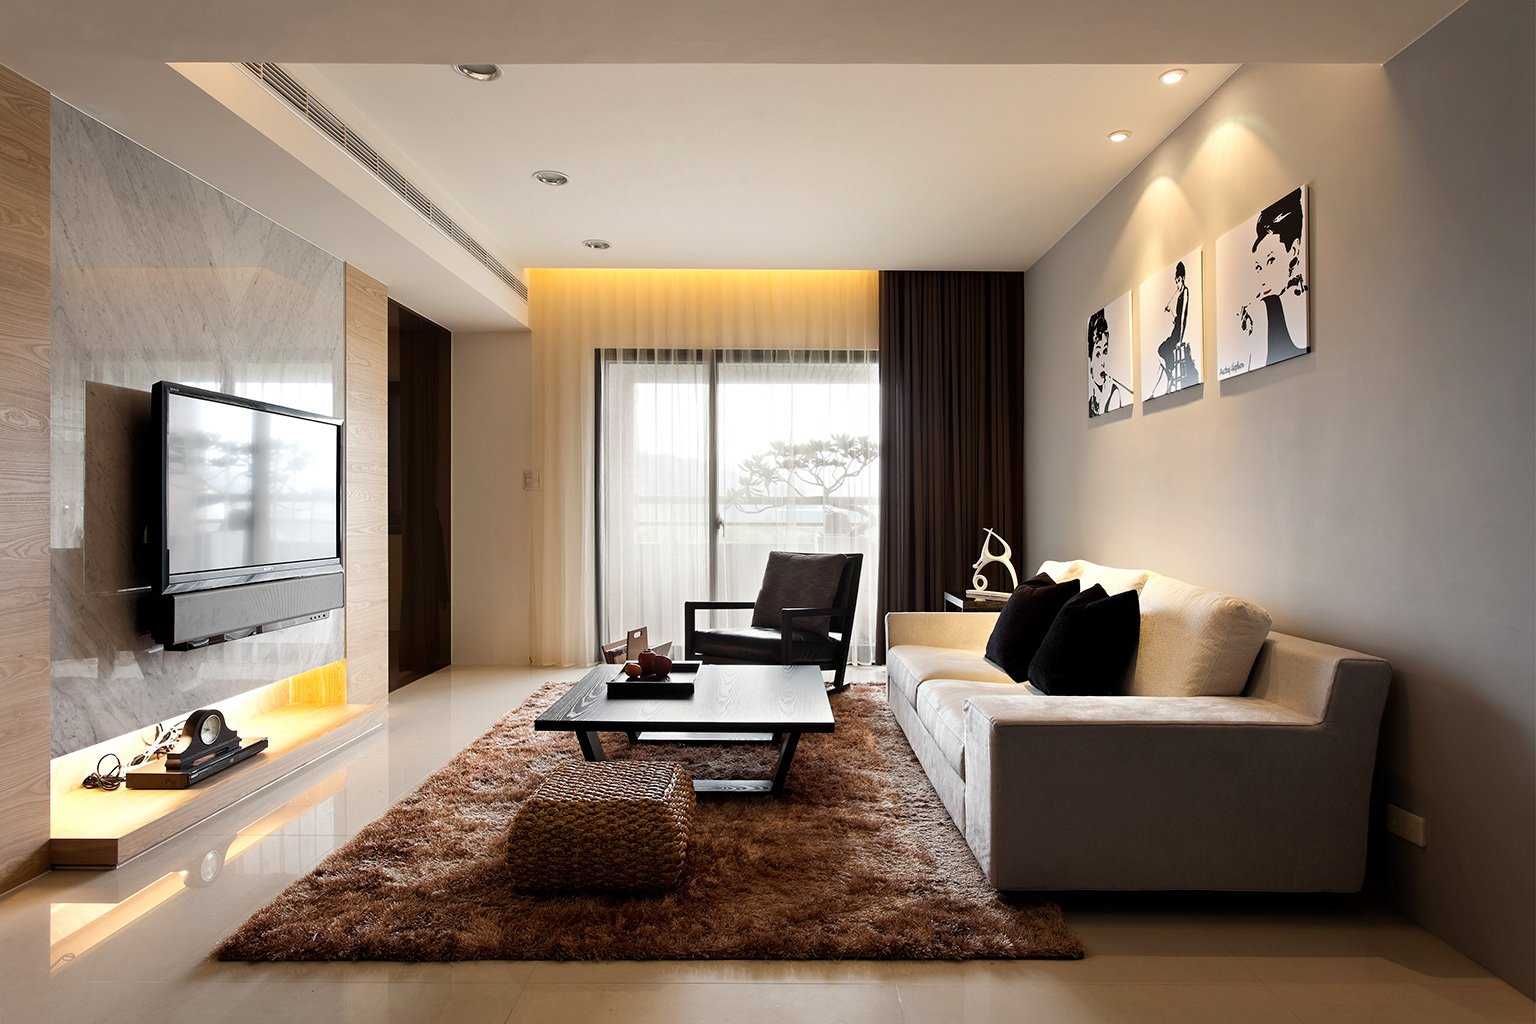 Apartment Design Ideas Modern Minimalist Decor With A Homey Flow